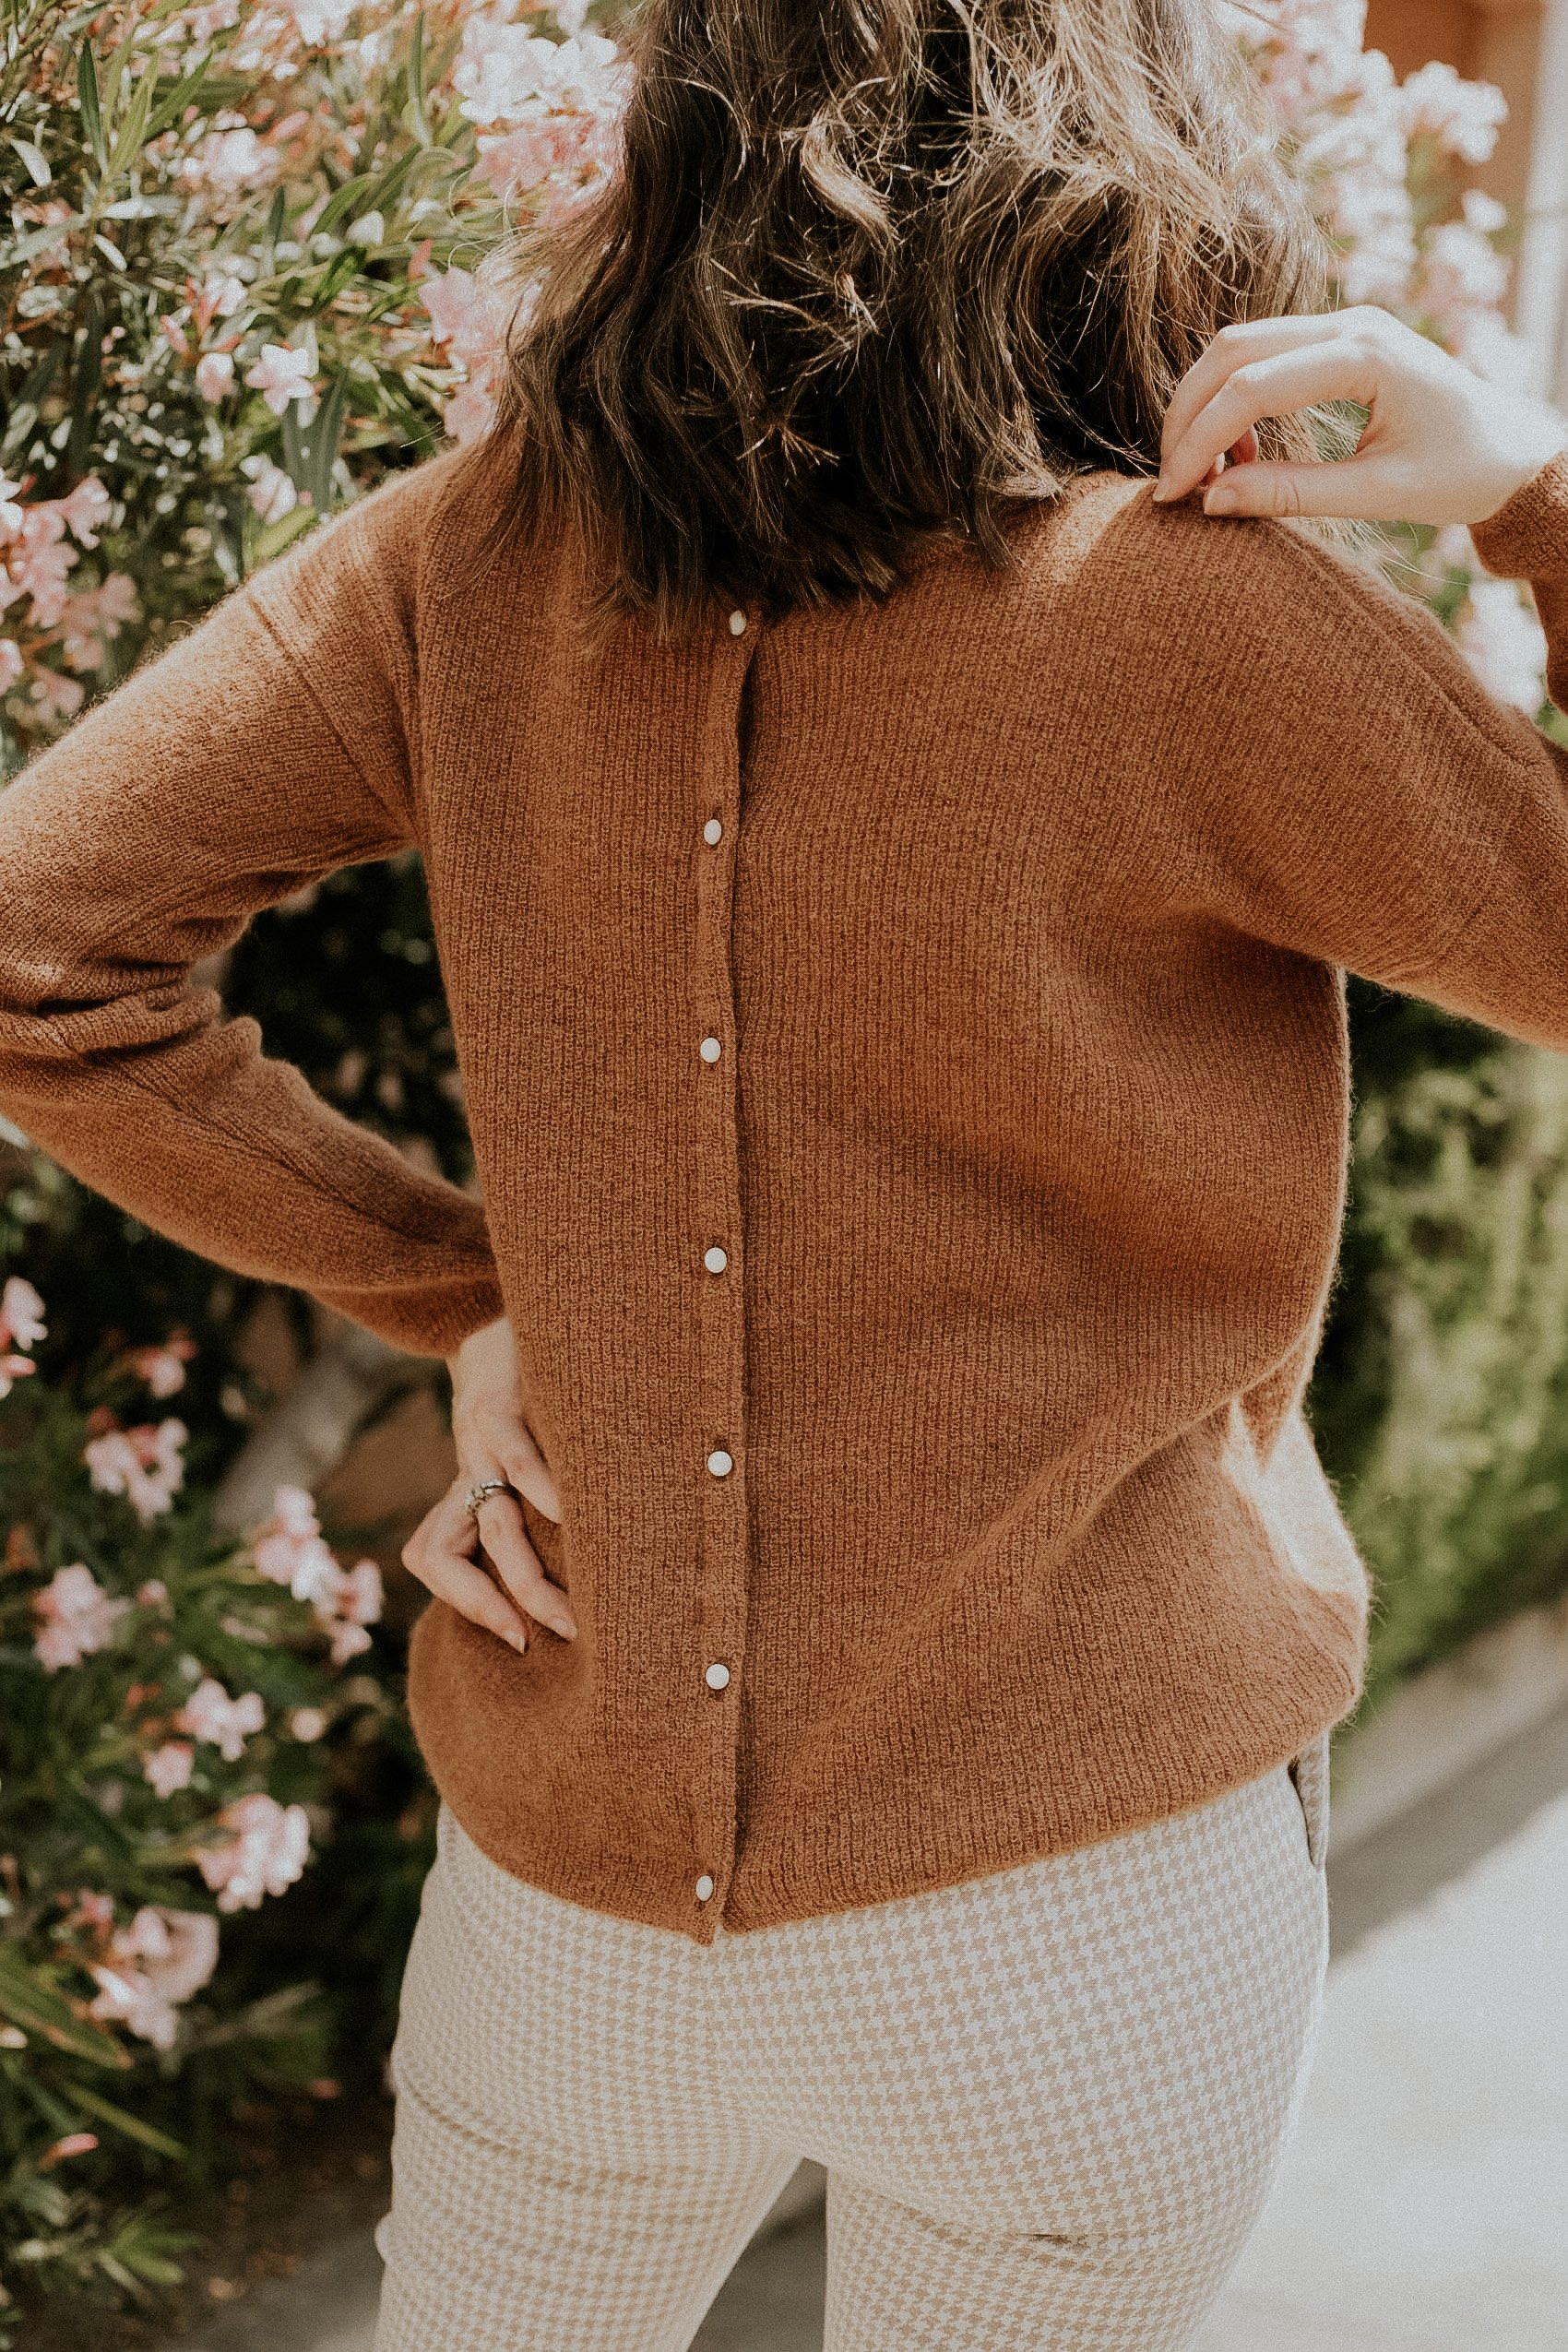 Reversible Sweater from French Fashion Brand Sezane